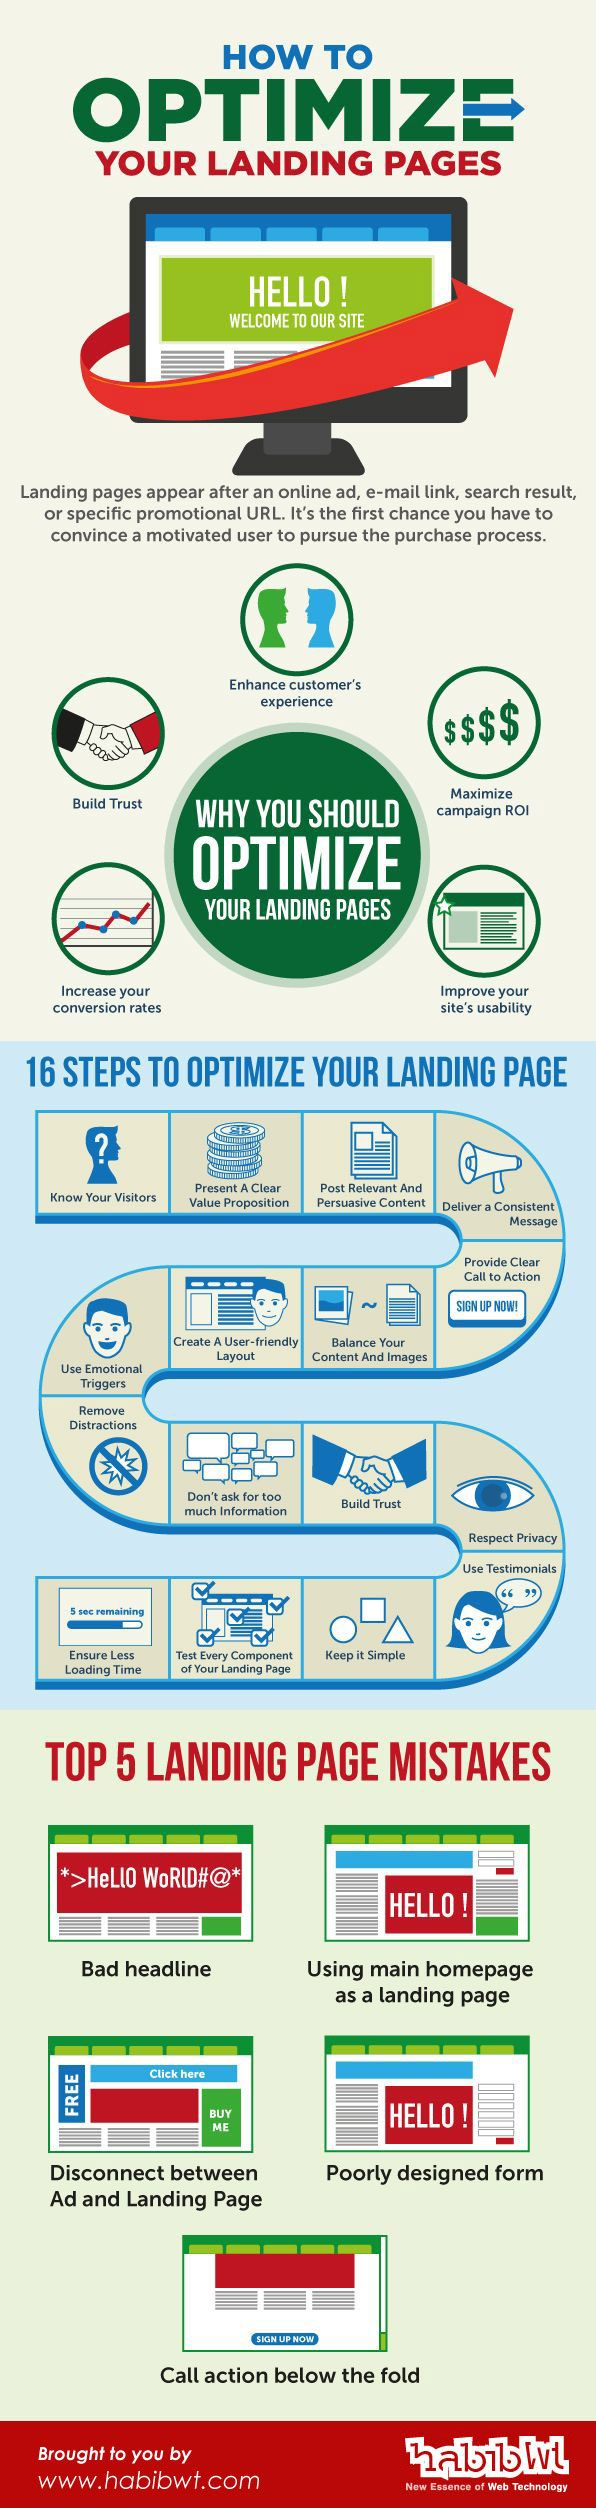 Optimize your landing pages